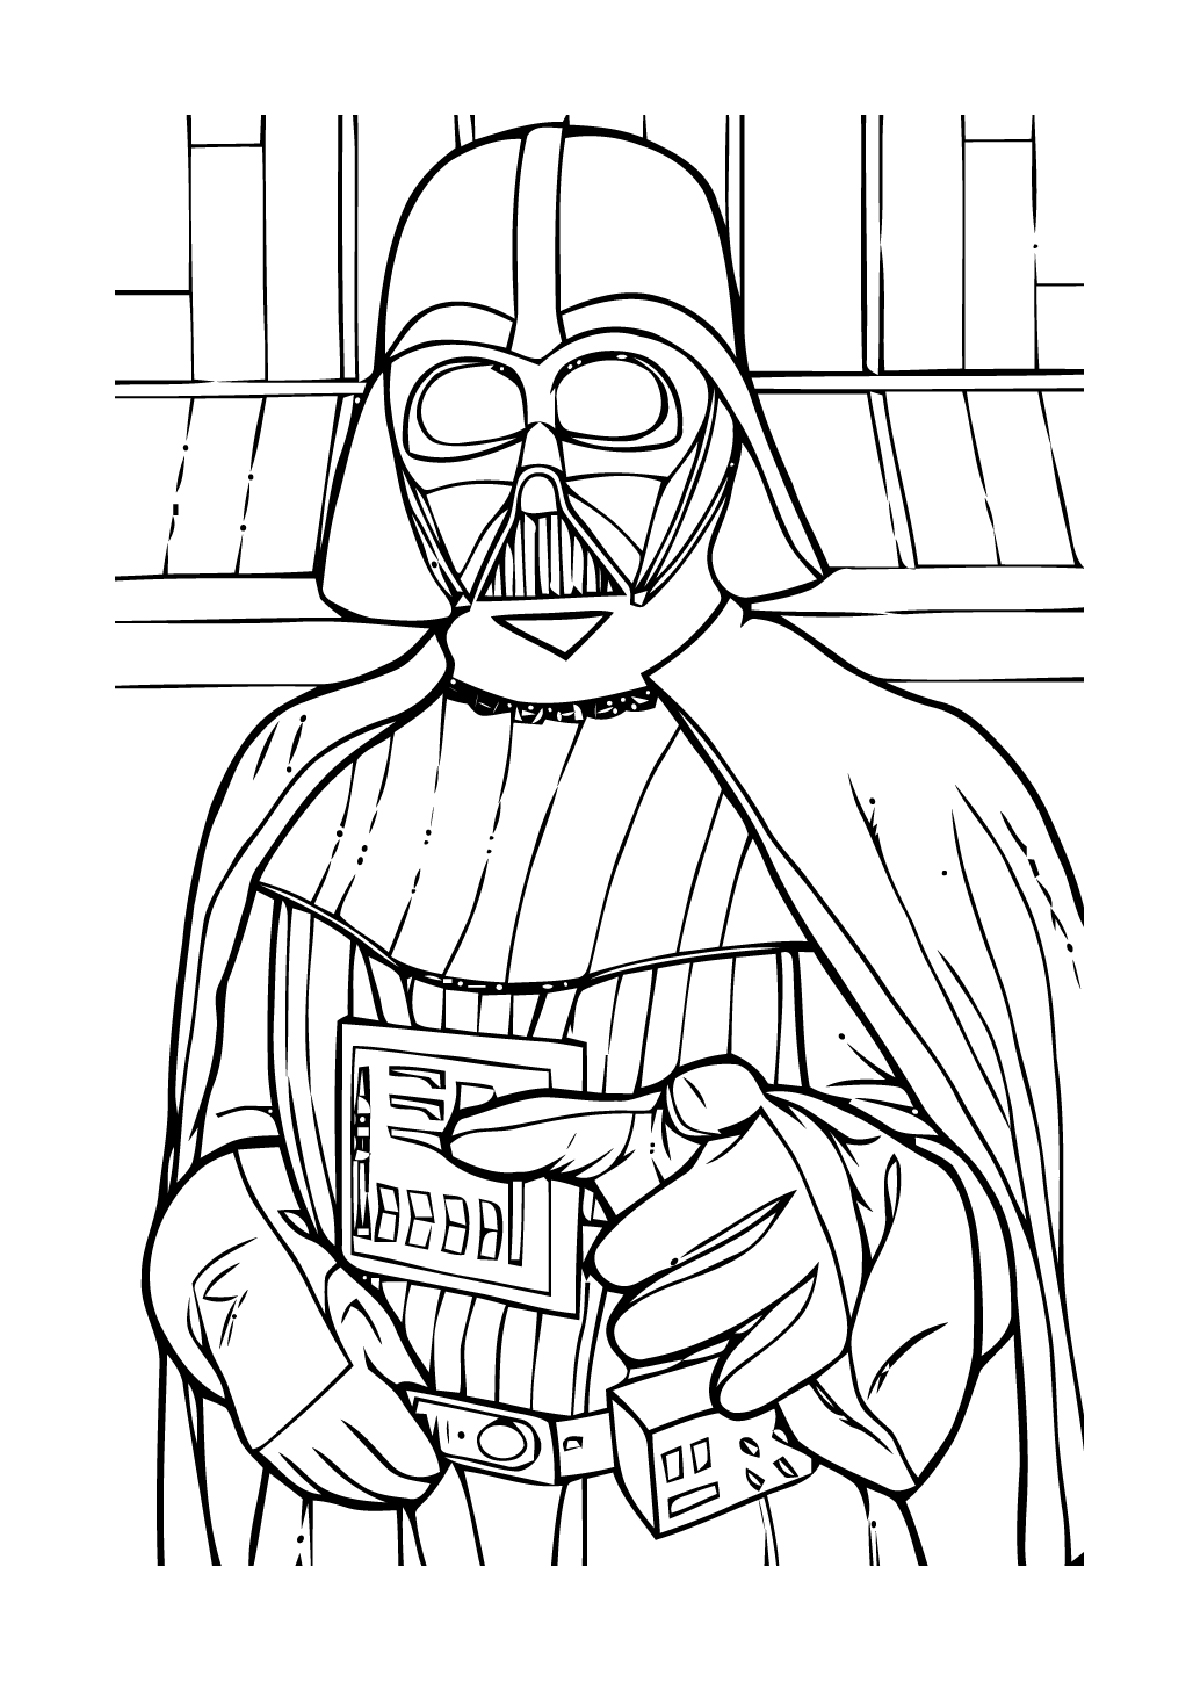 star wars colouring for kids star wars free to color for kids star wars kids coloring wars colouring star for kids 1 1